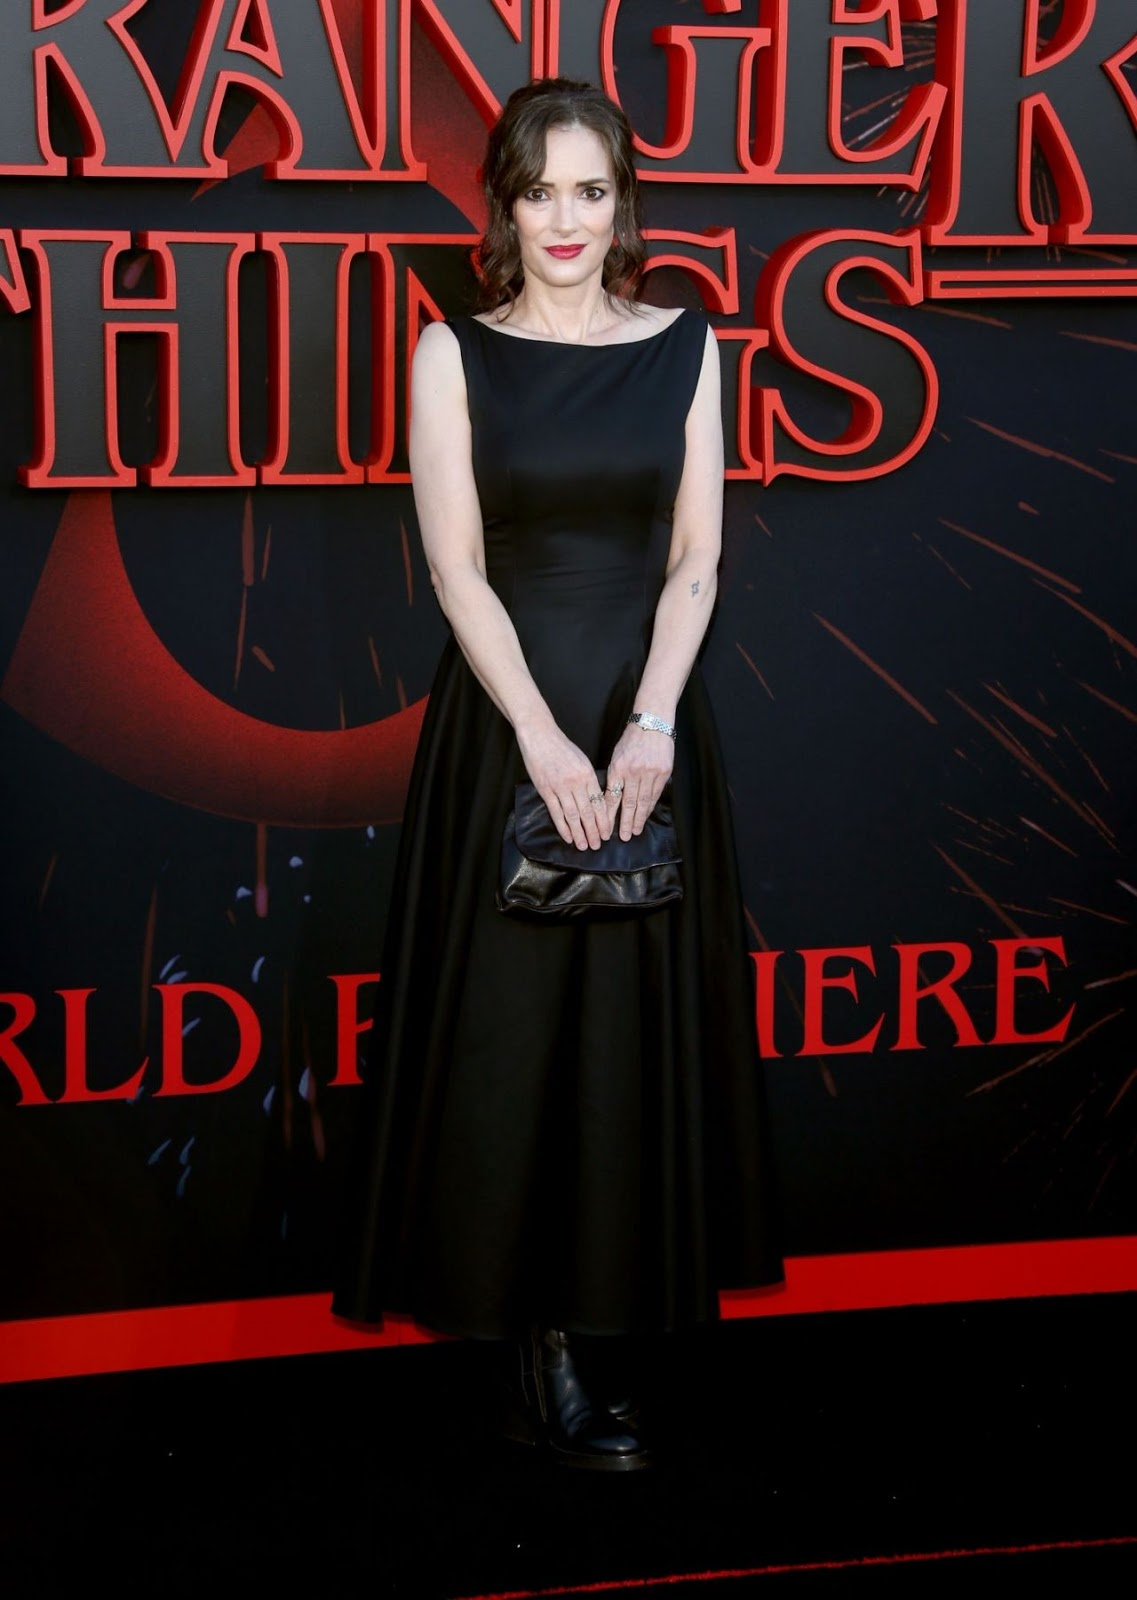 Winona Ryder cuts a sophisticated chic figure in elegant black dress at Stranger Things 3 premiere in Los Angeles